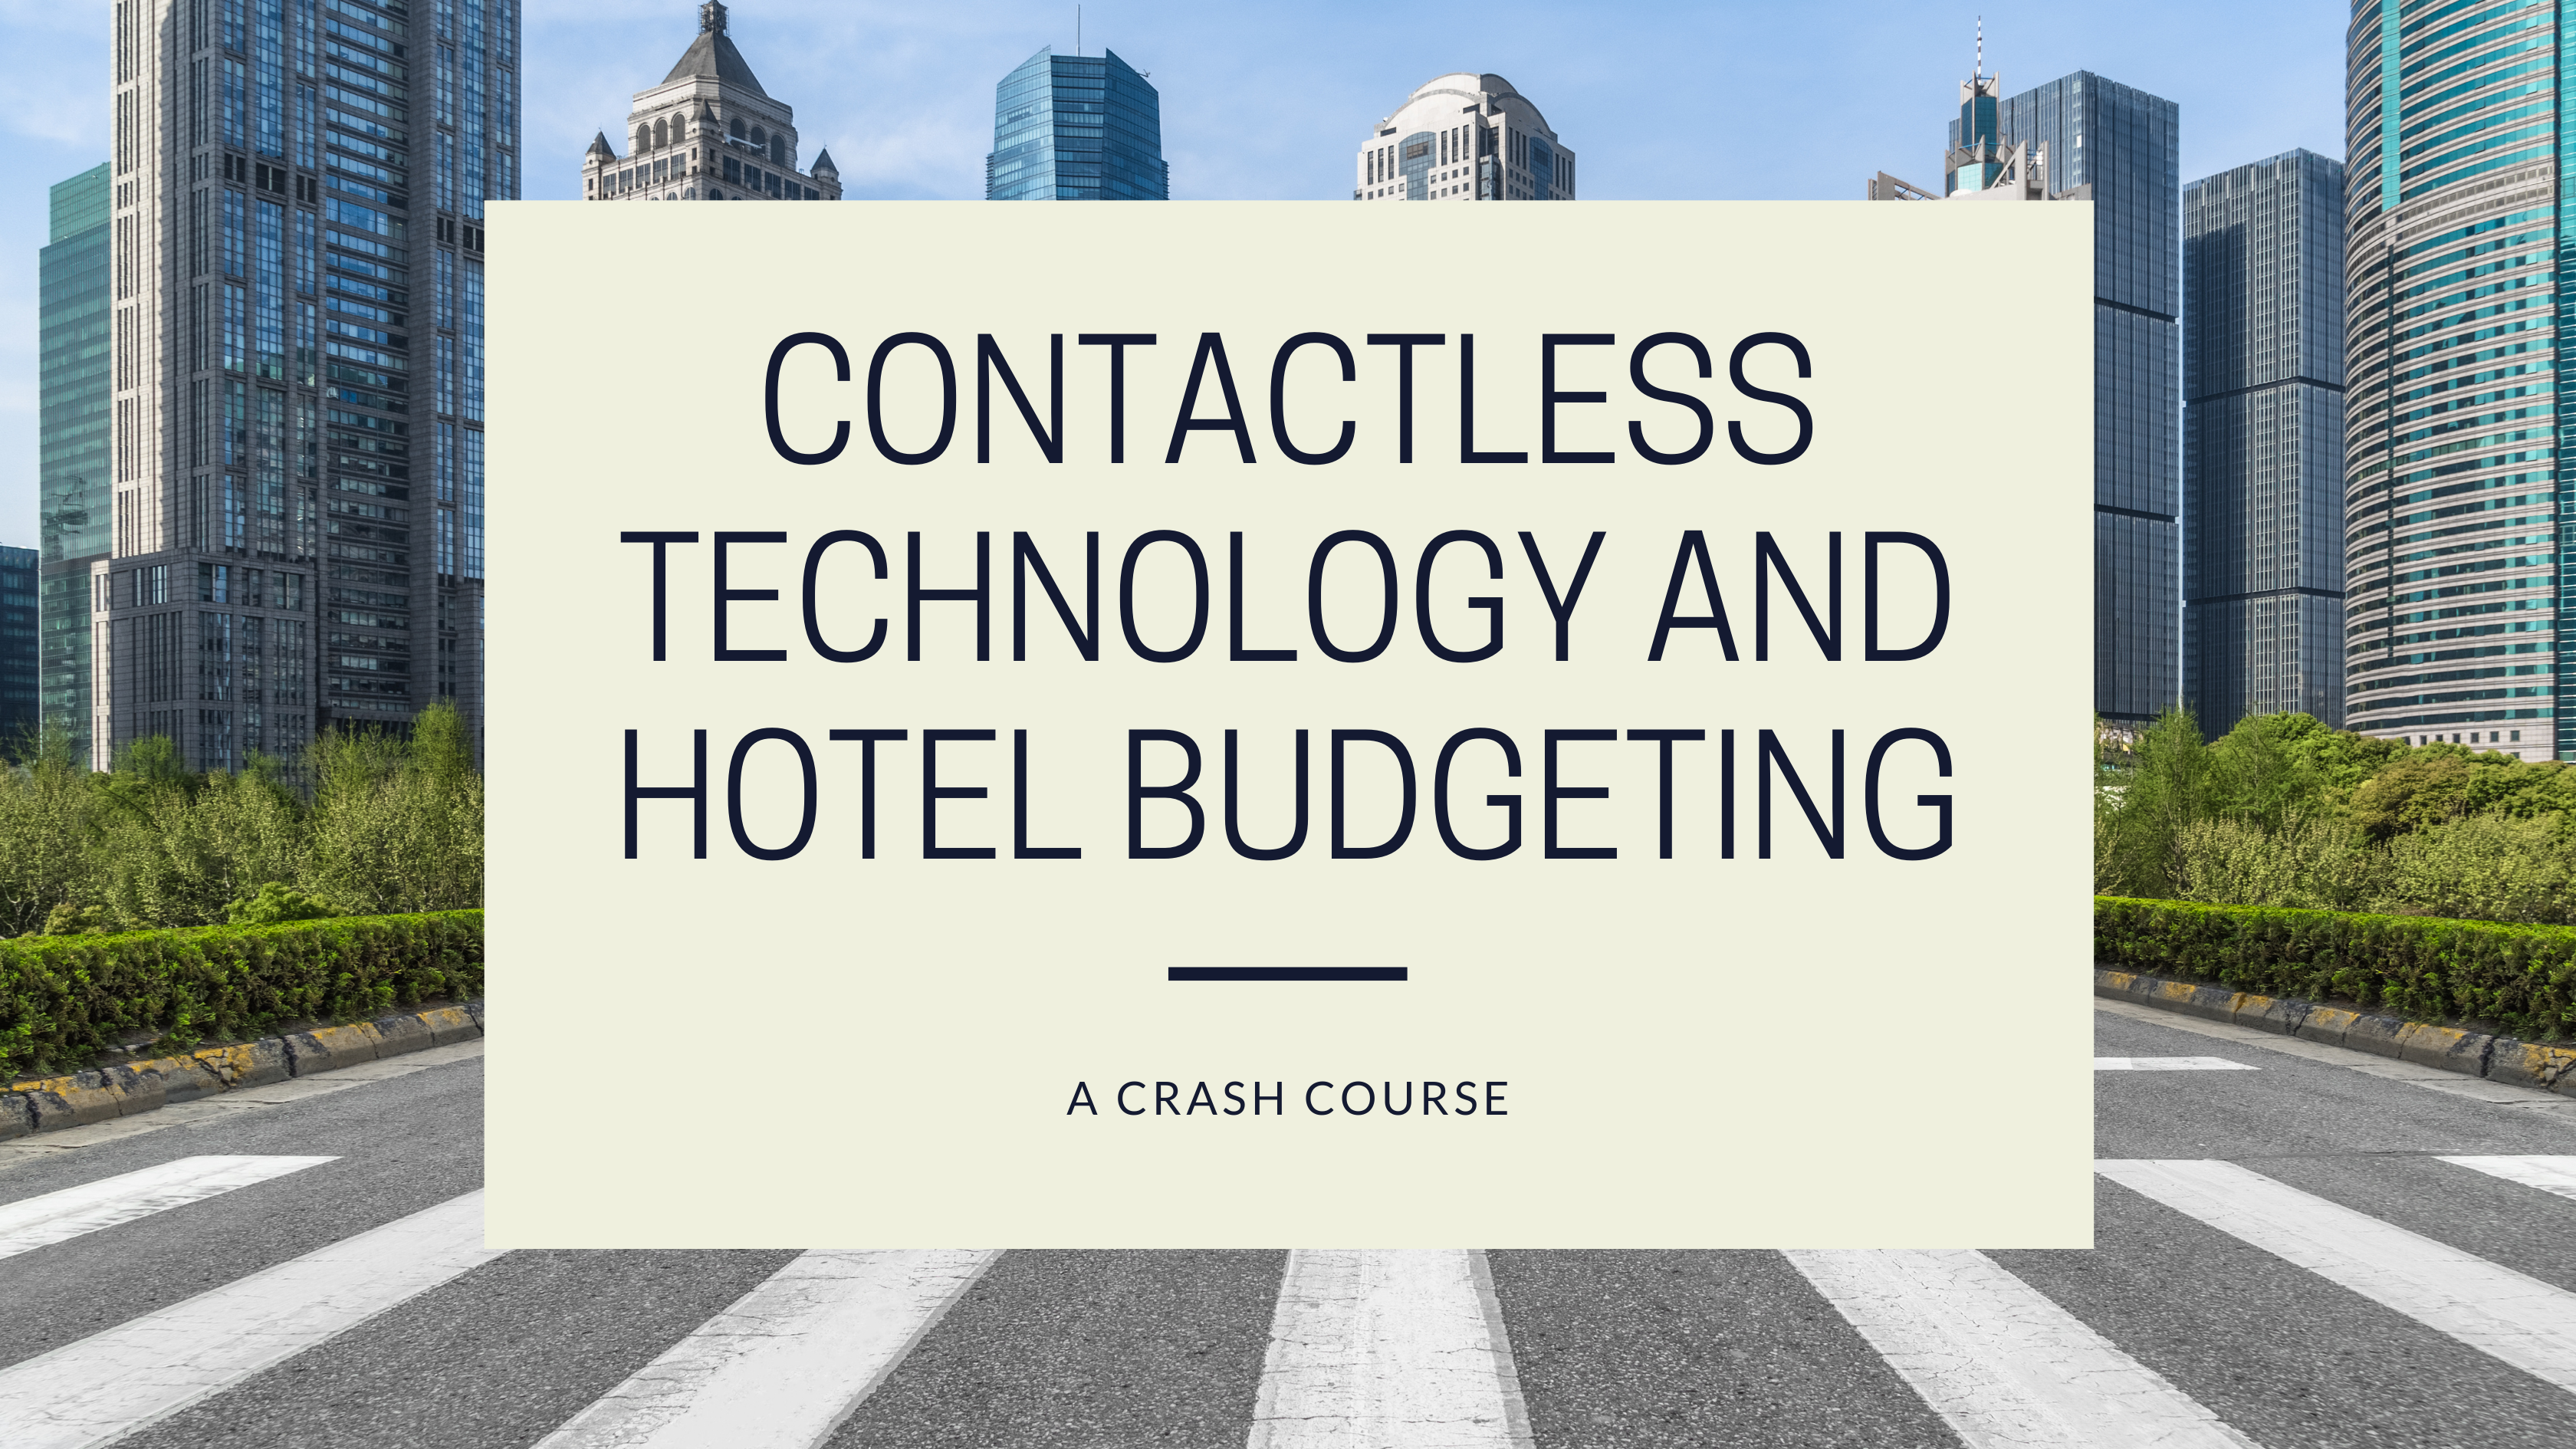 Contactless Technology and Hotel Budgeting: A Crash Course